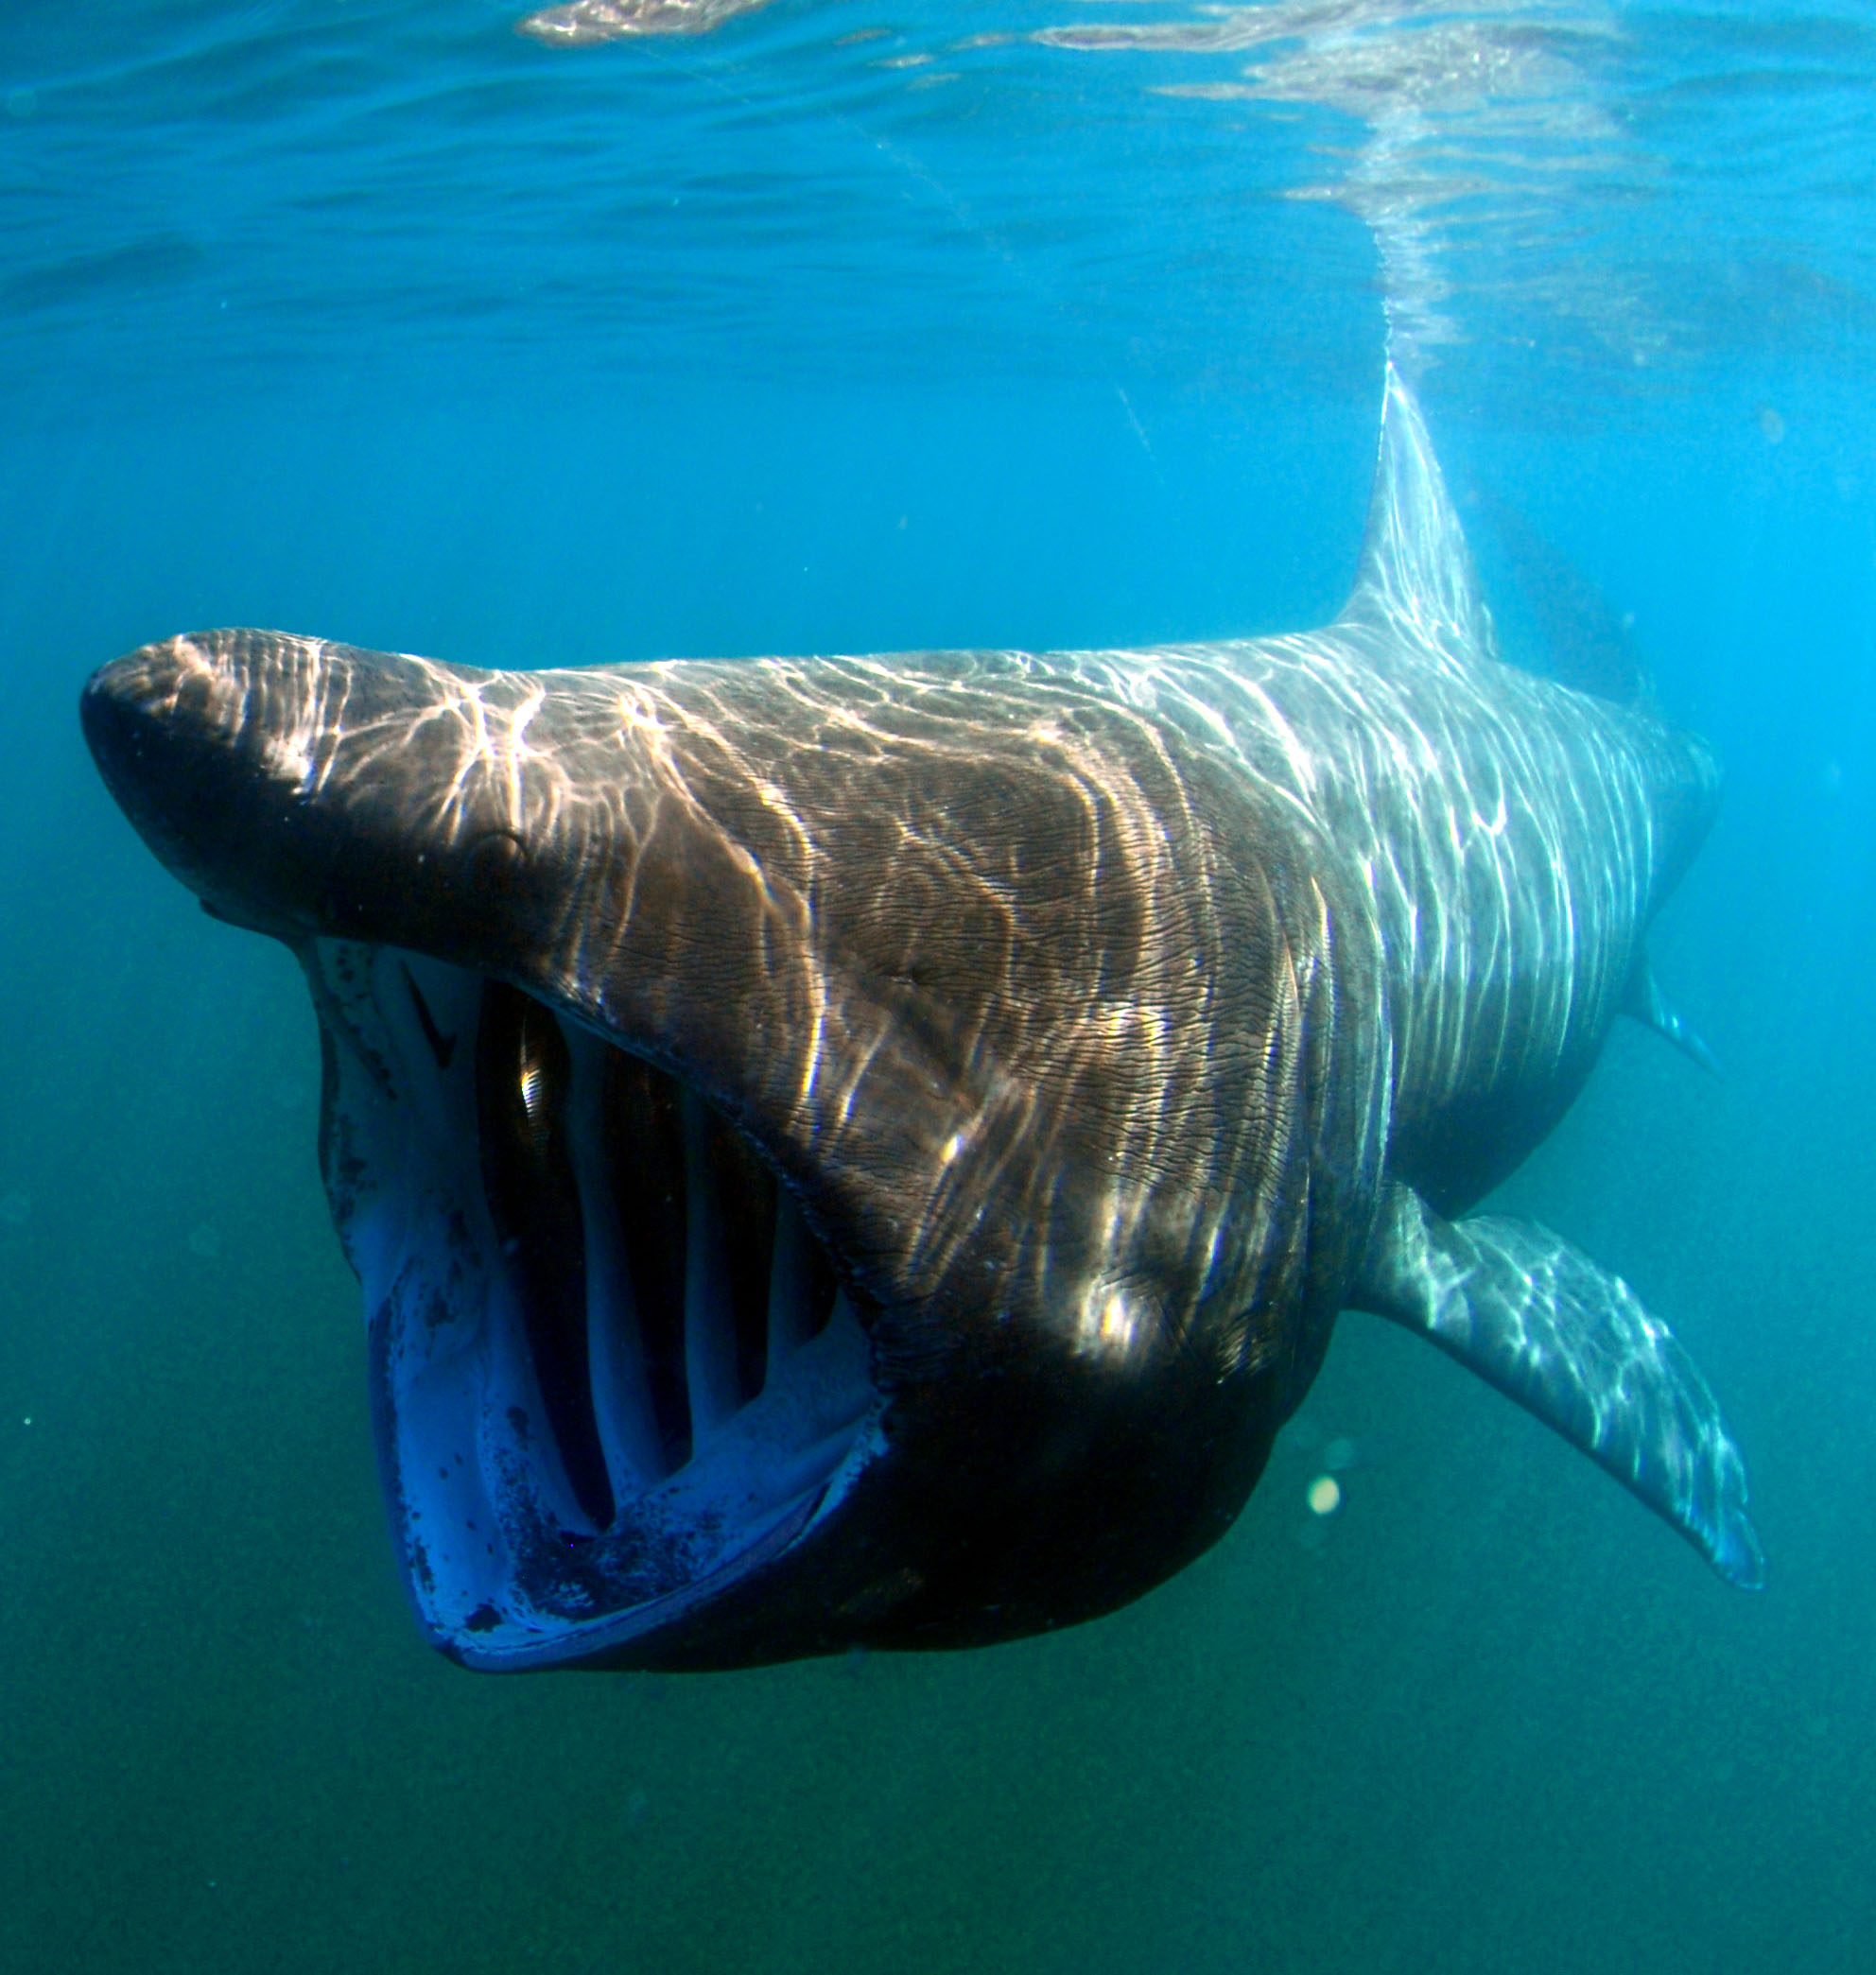 A sun-dappled basking shark swims towards the camera with its huge mouth open.